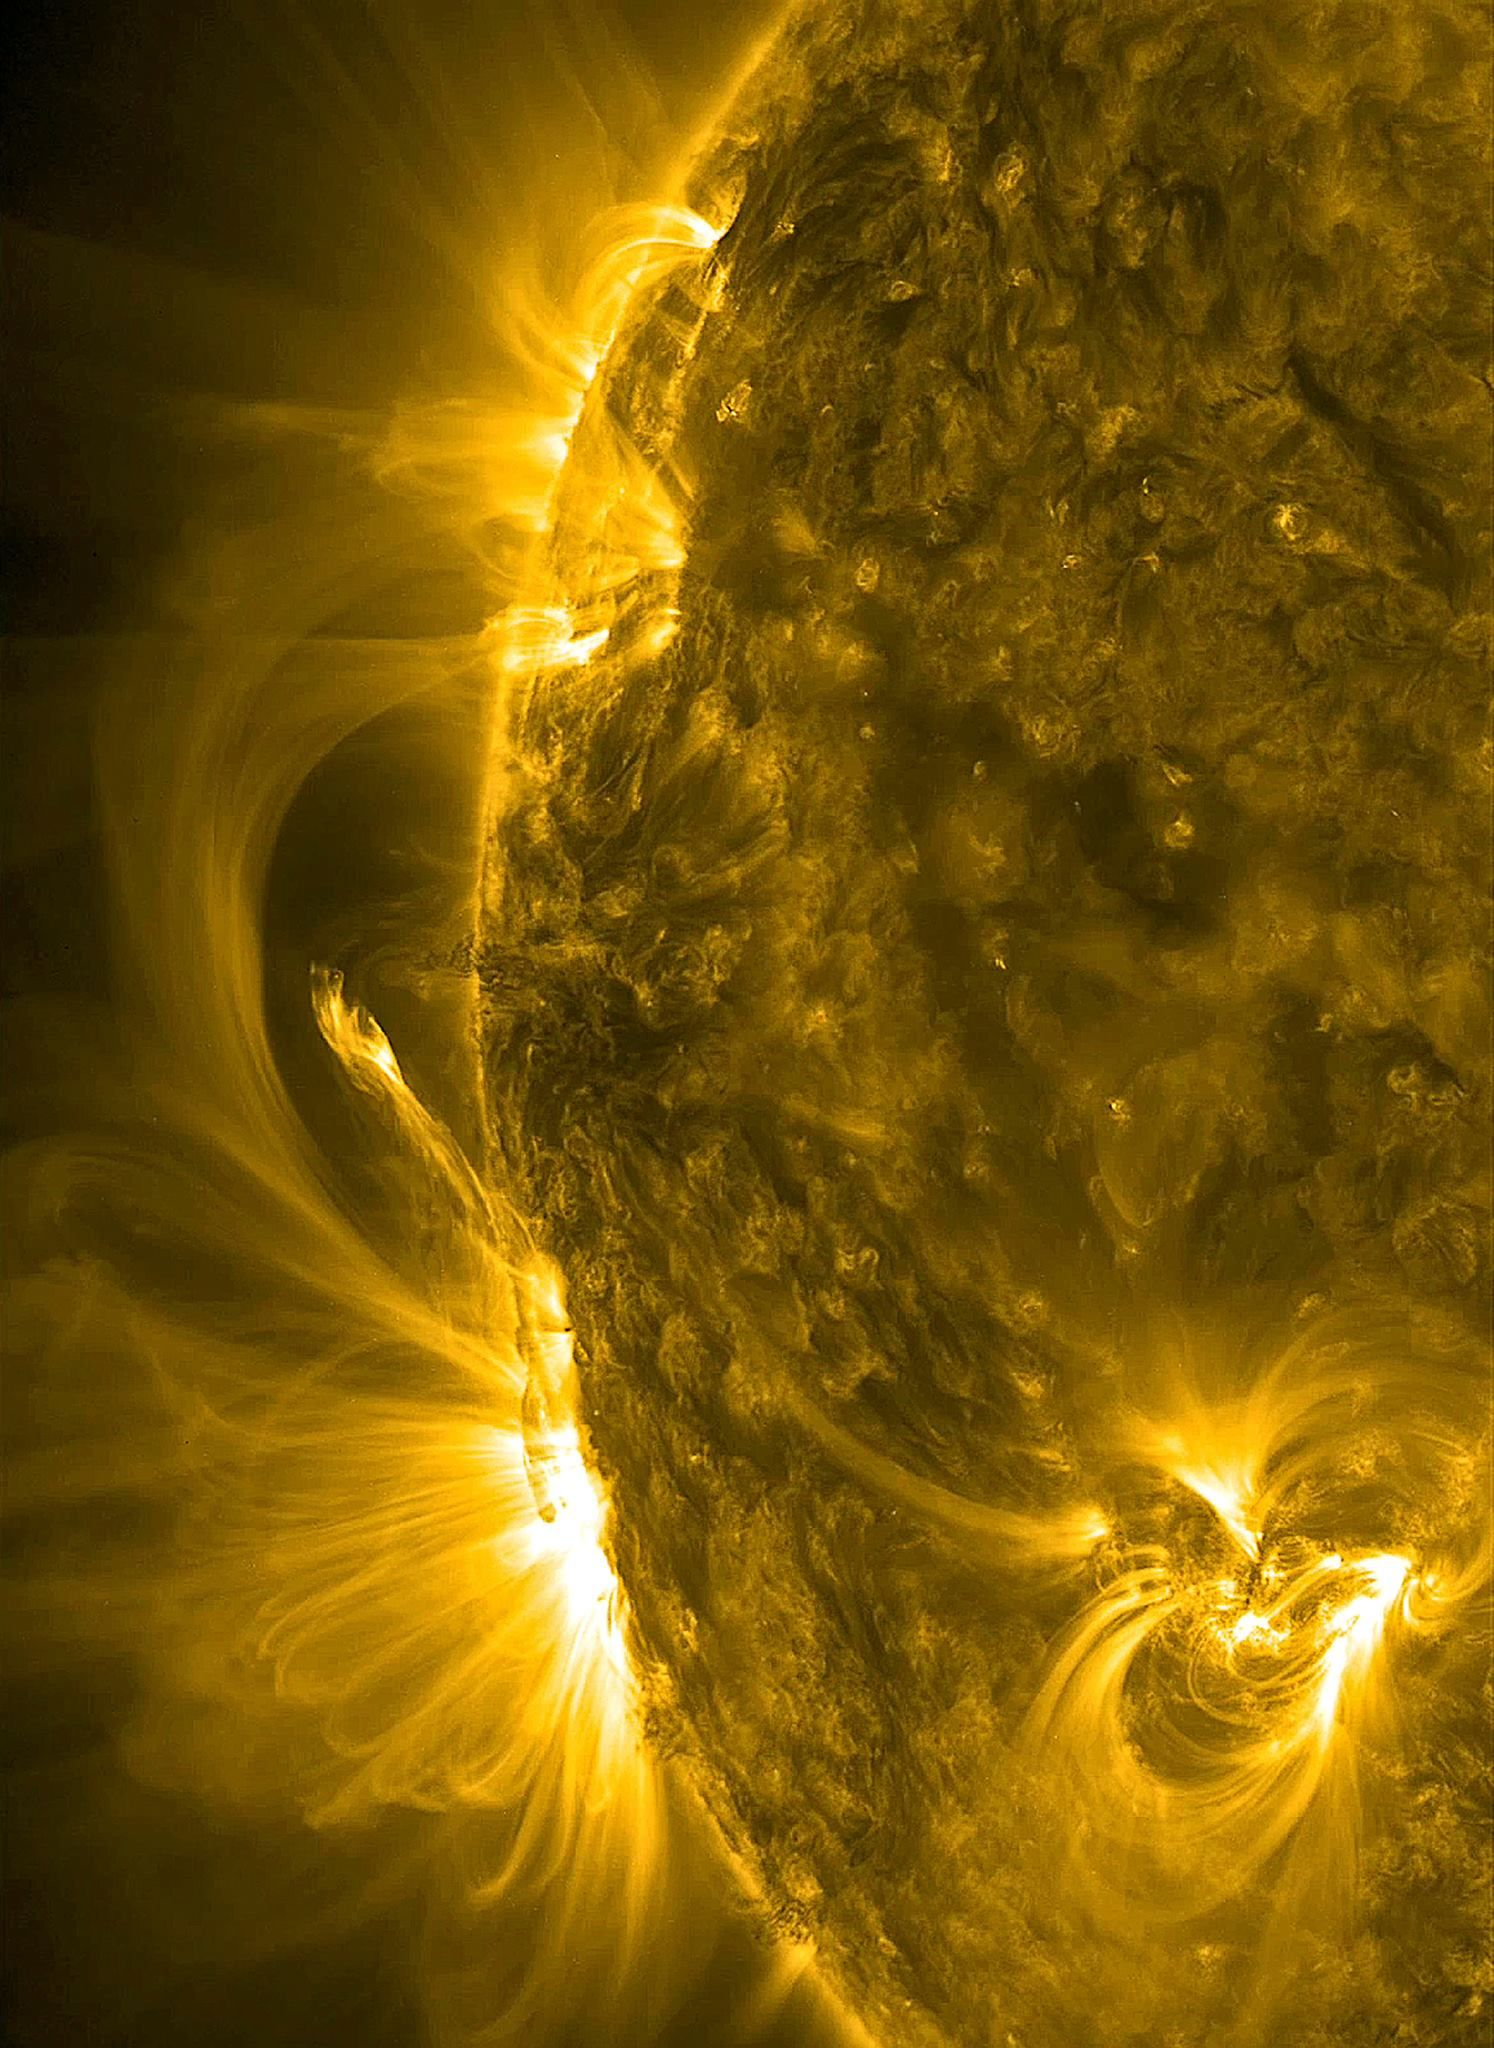 Thin ribbons of plasma and magnetic lines burst from the sun in one of our Space Photos of the Week.